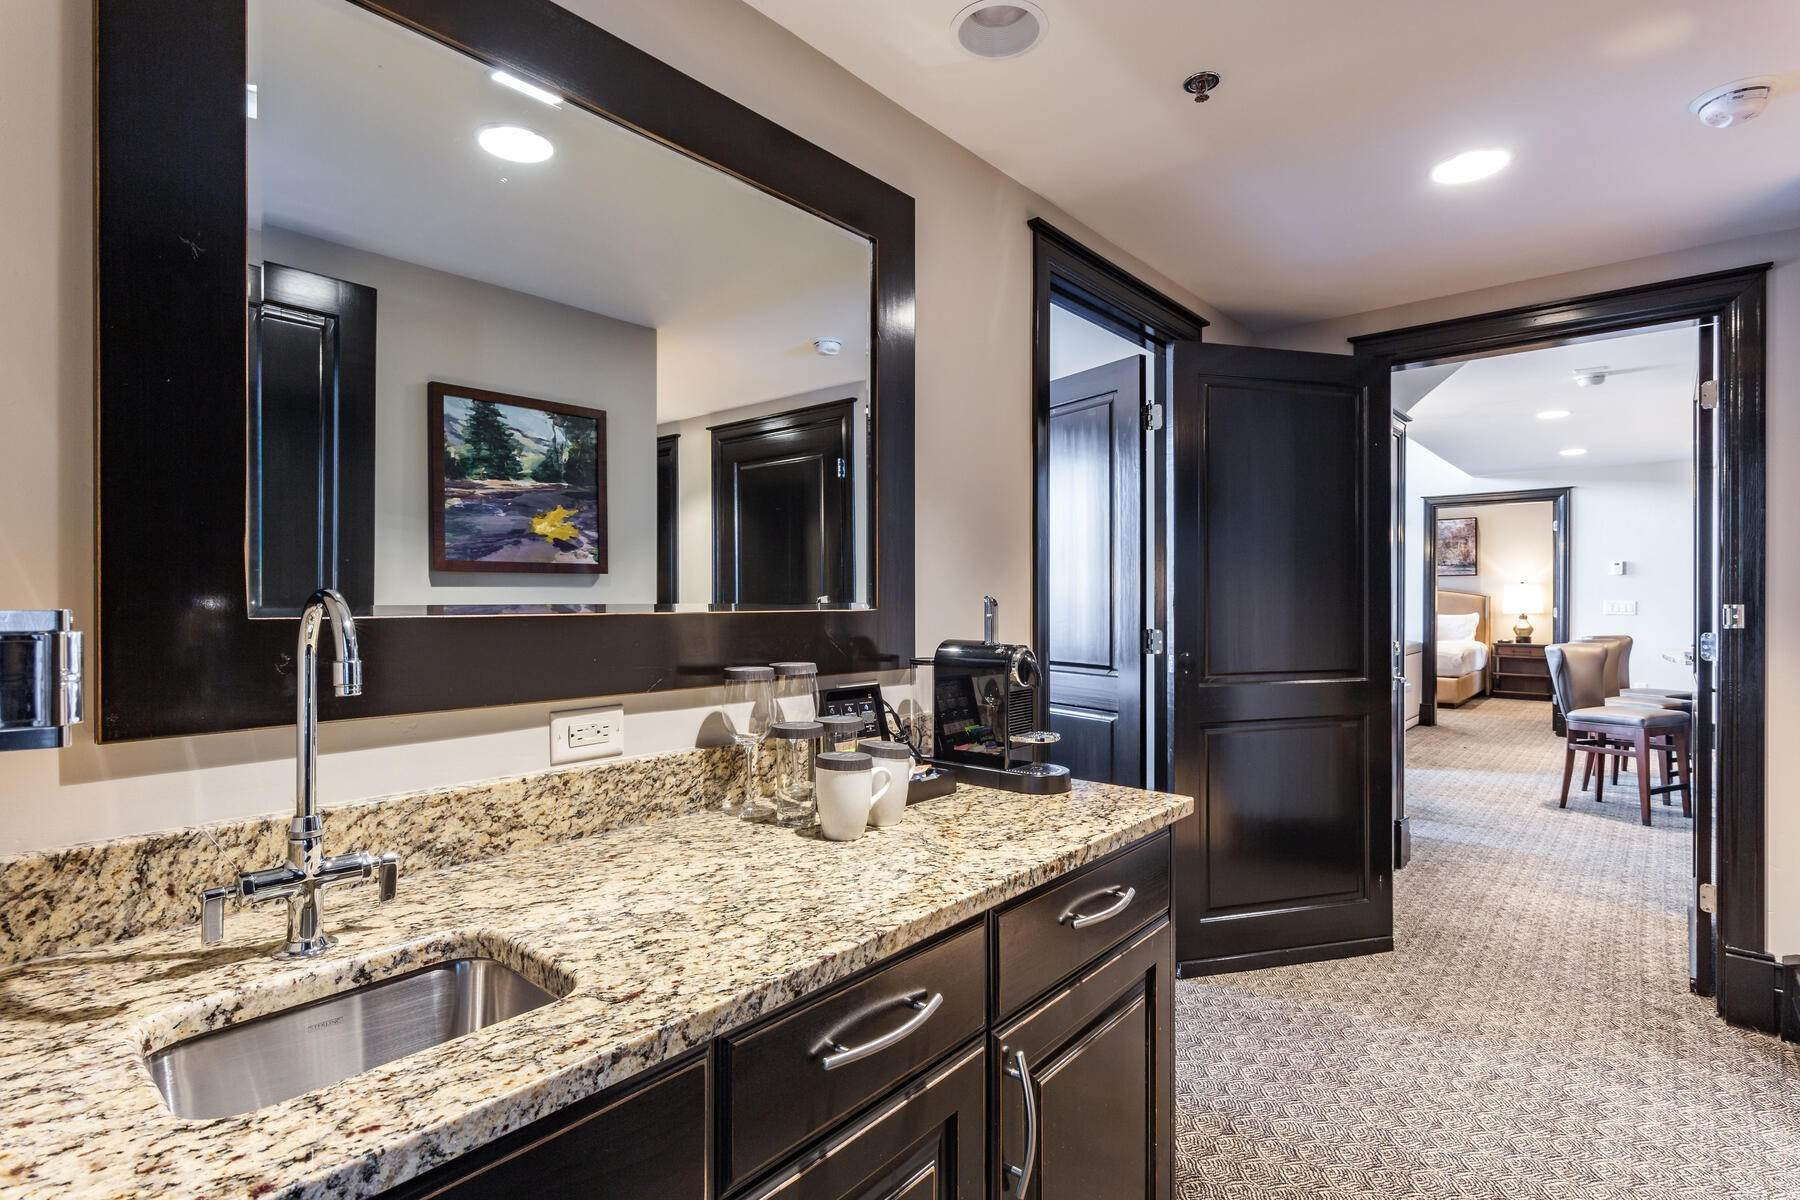 20. Condominiums for Sale at Only 4-Bedroom Available at Waldorf Astoria, Top Floor, Penthouse Unit 2100 W Frostwood Blvd, #7117 Park City, Utah 84098 United States